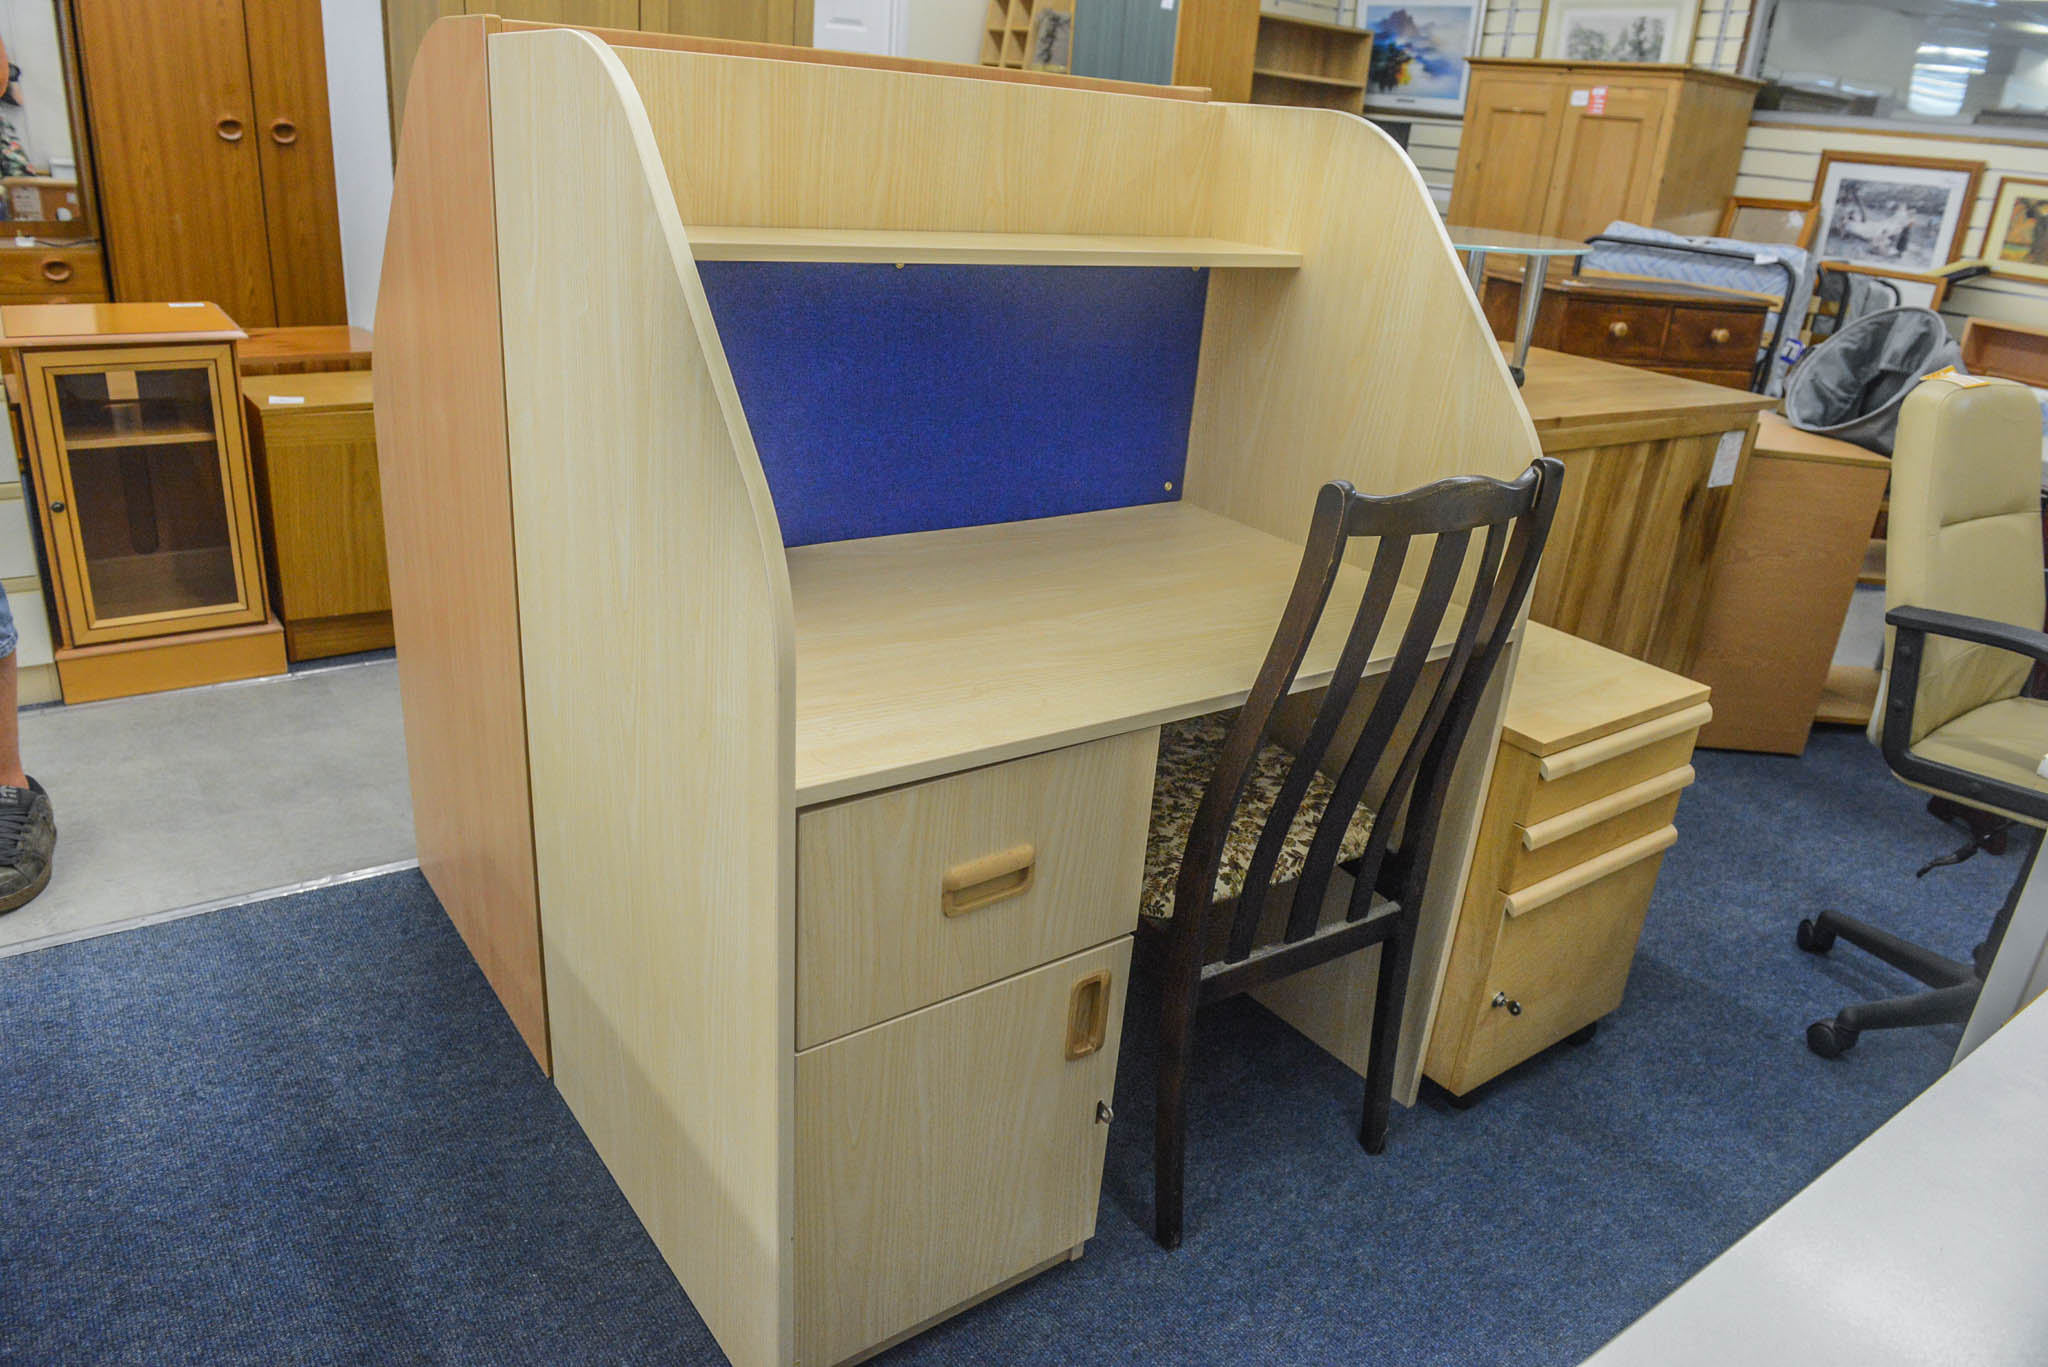 Workstation Desk with removable pedestal for left hand or right hand set up. 1m wide, 65cm deep, 1.28m tall.